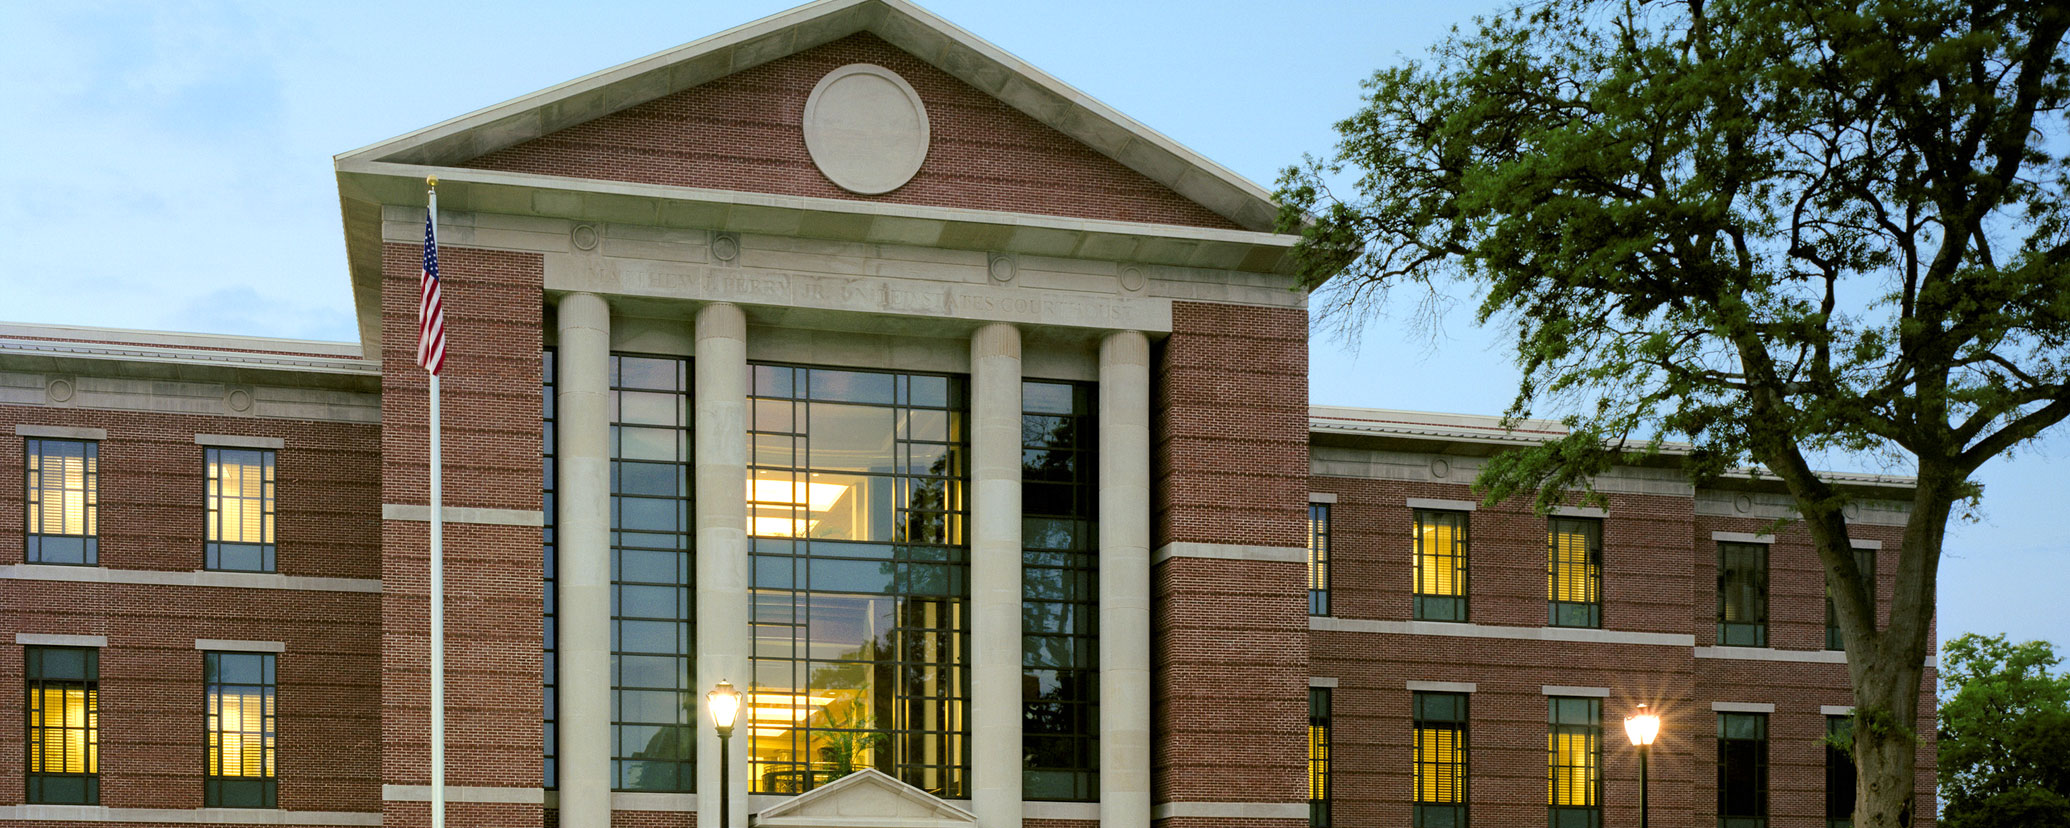 Caddell Construction- U.S. Courthouse Columbia, SC